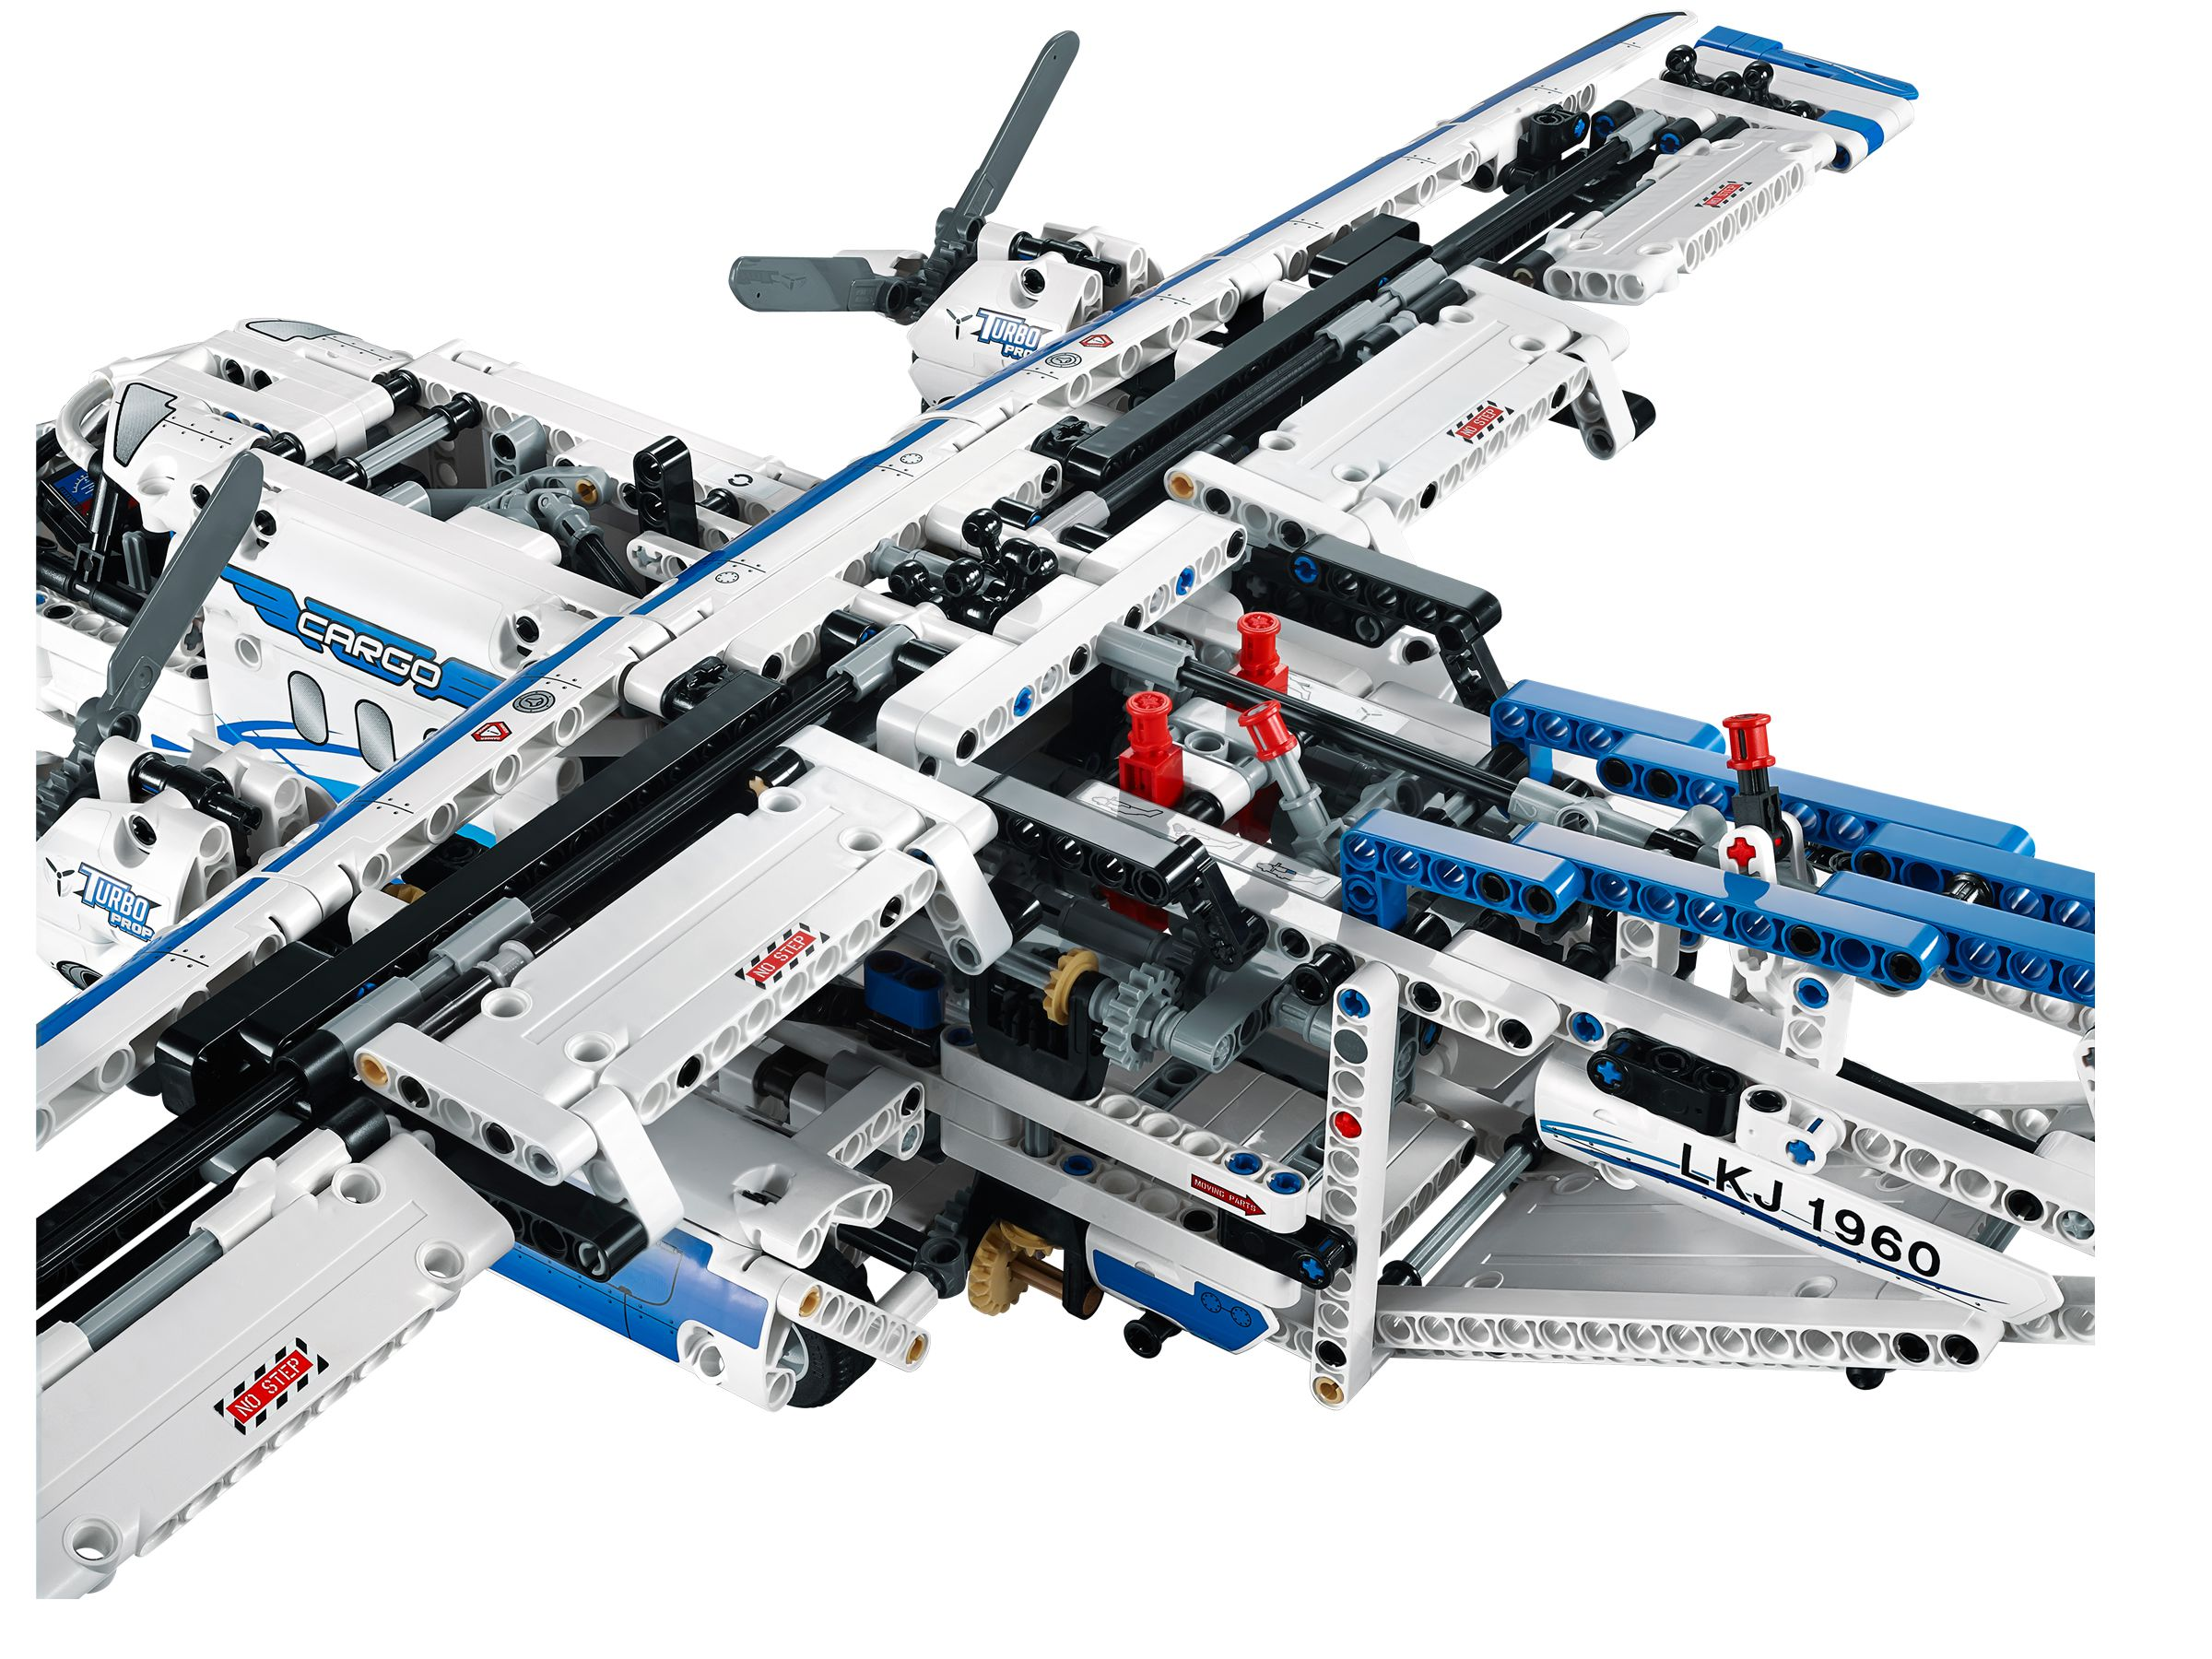 lego 42025 frachtflugzeug technic 2014 cargo plane brickmerge. Black Bedroom Furniture Sets. Home Design Ideas